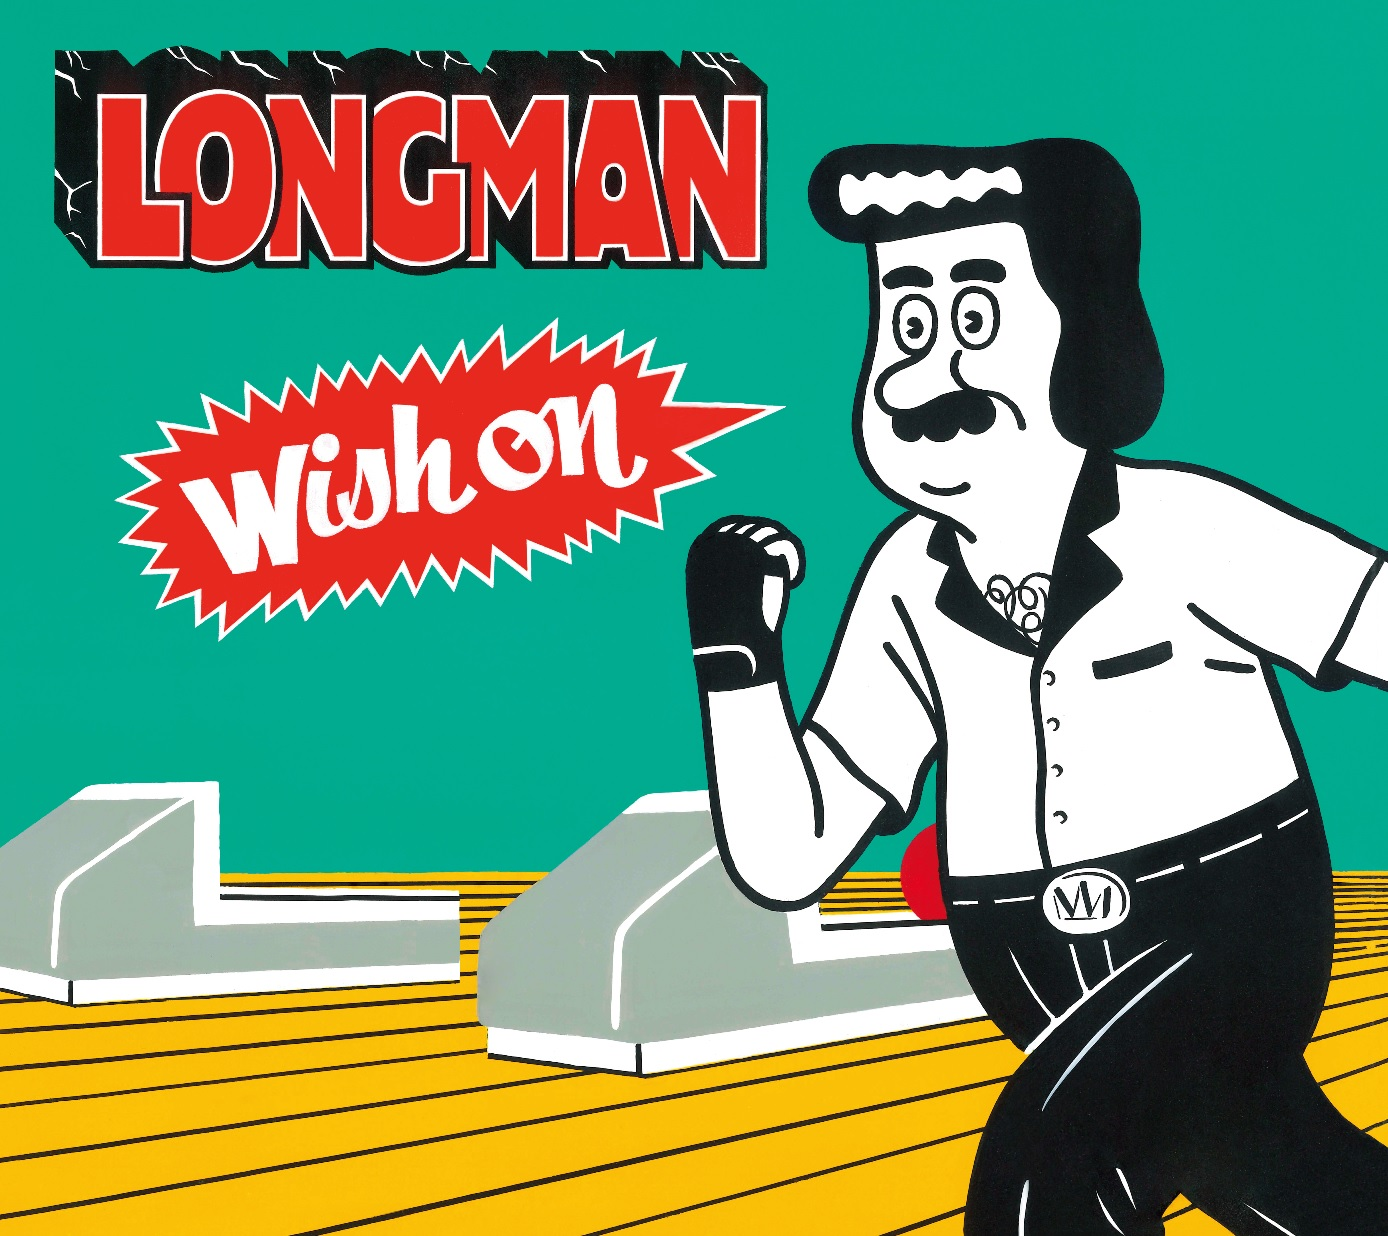 LONGMAN|Wish on